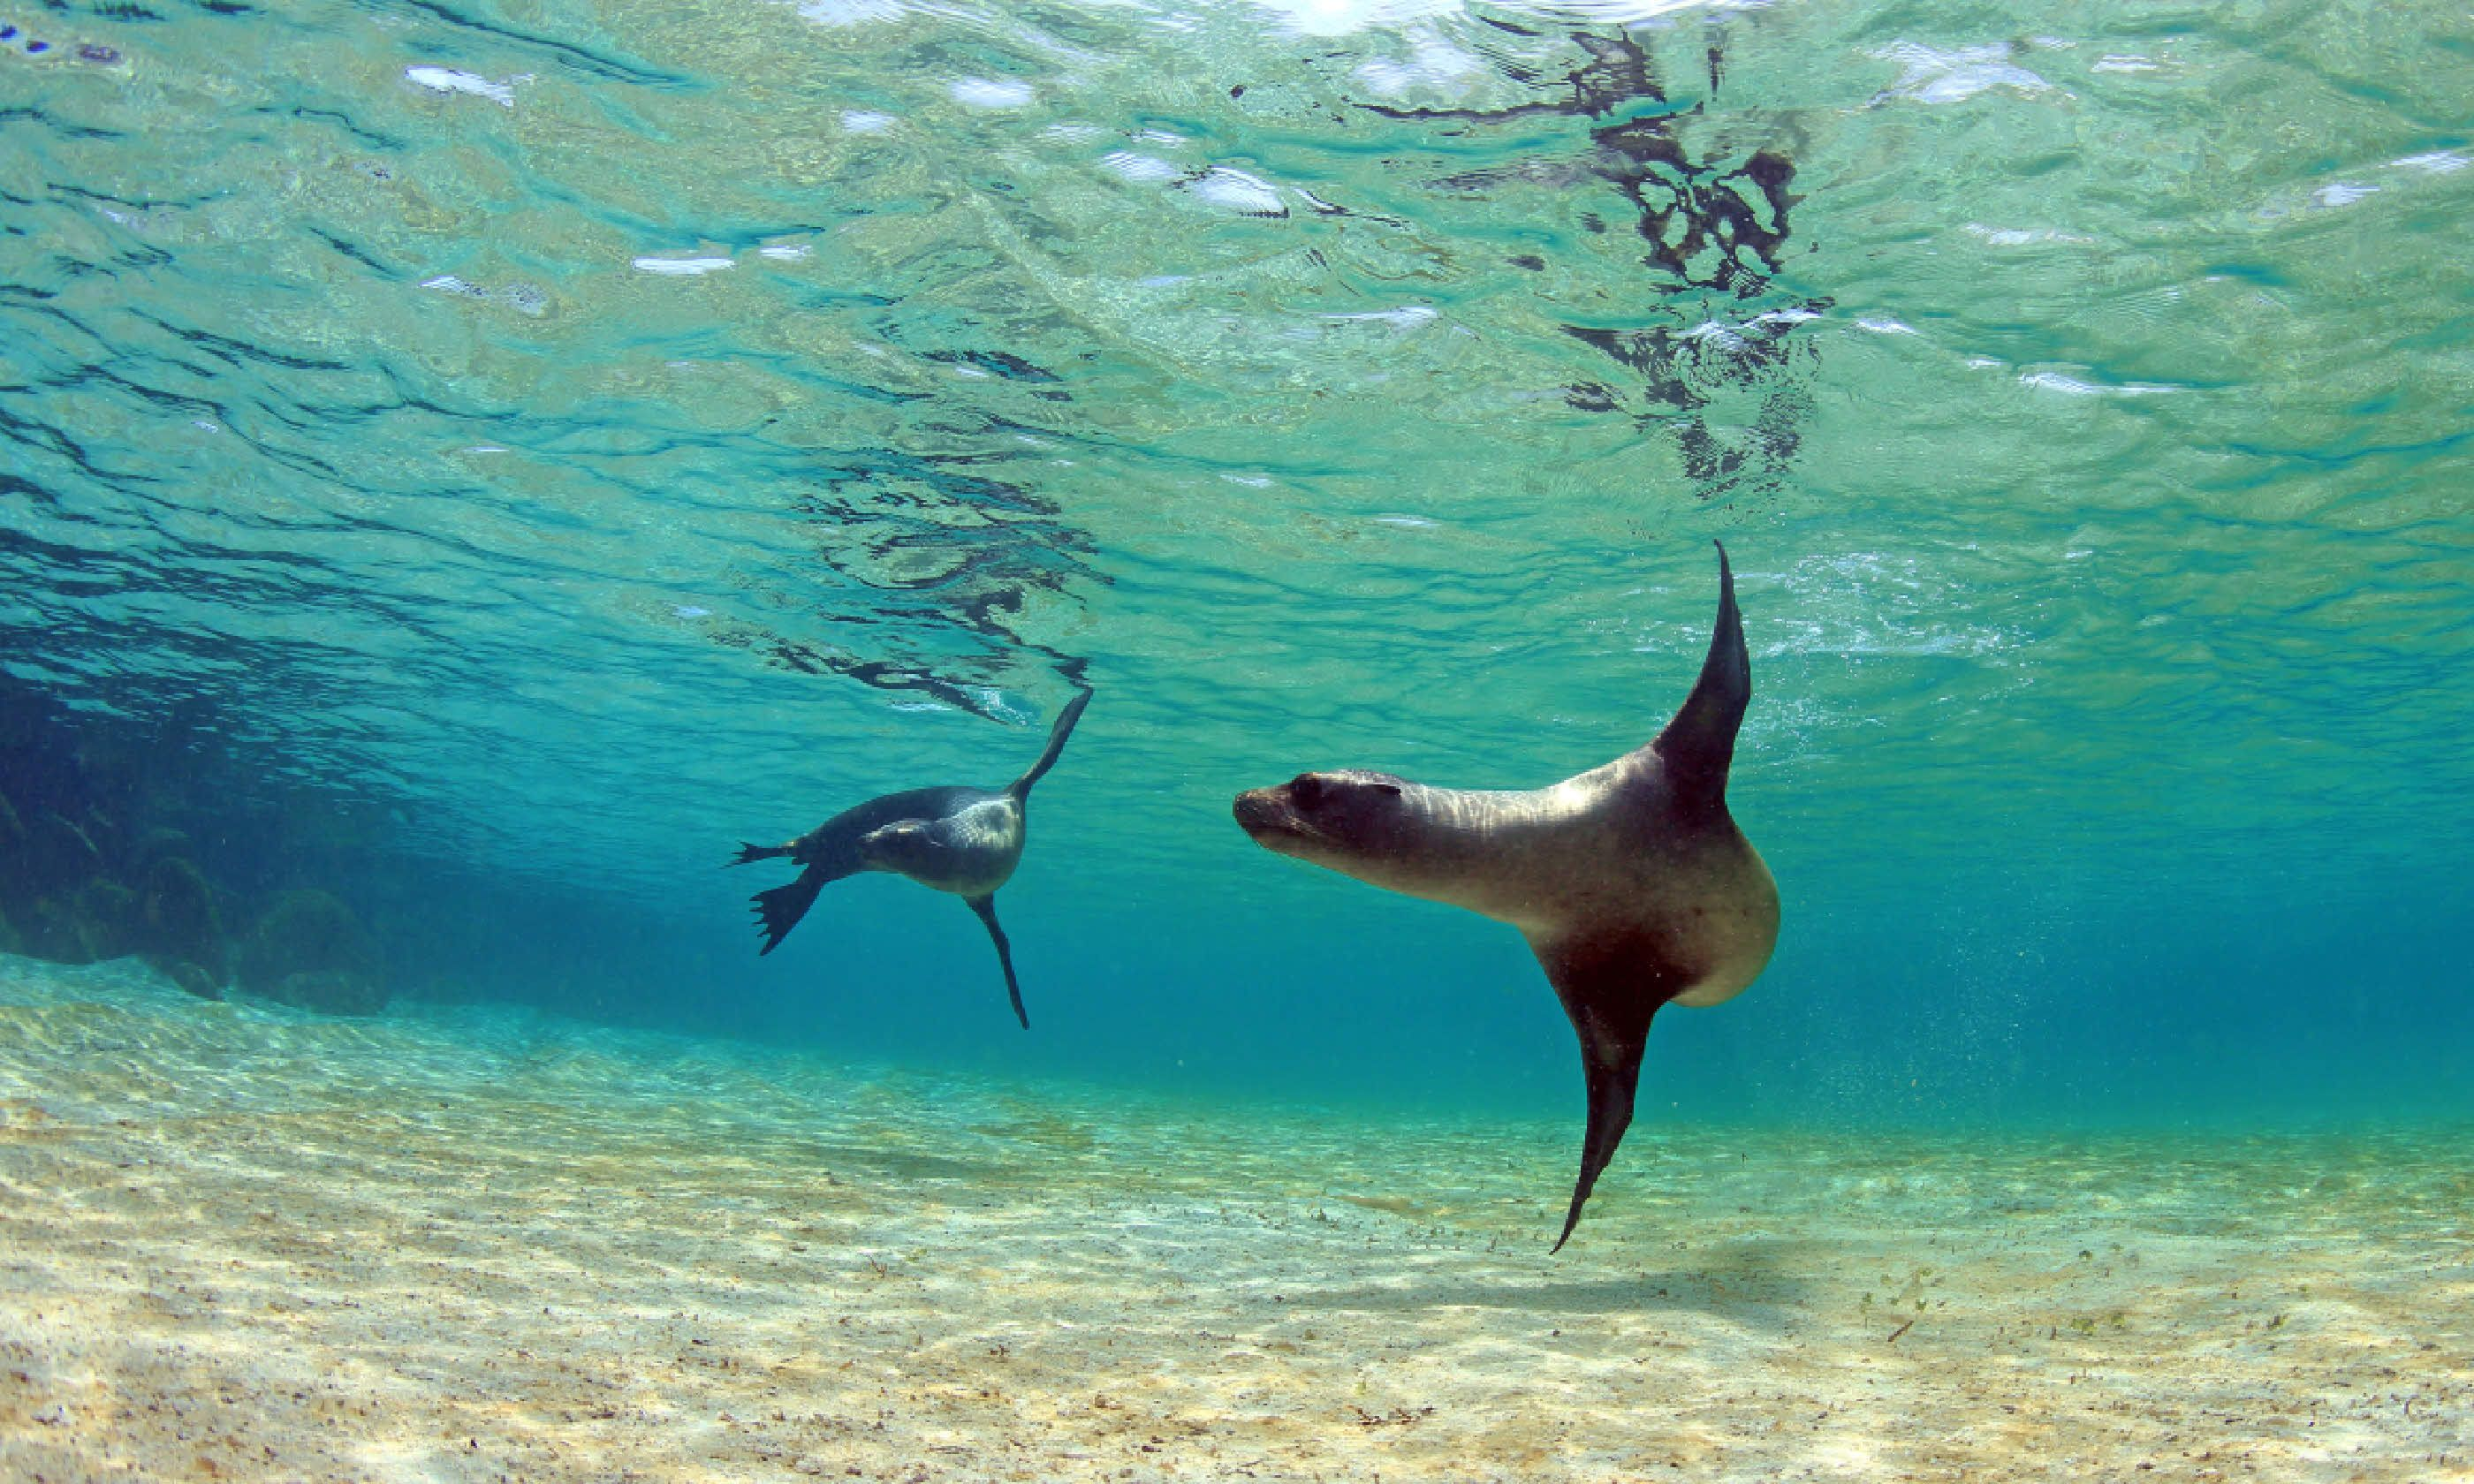 Sea lions in the Galapagos Islands (Shutterstock)